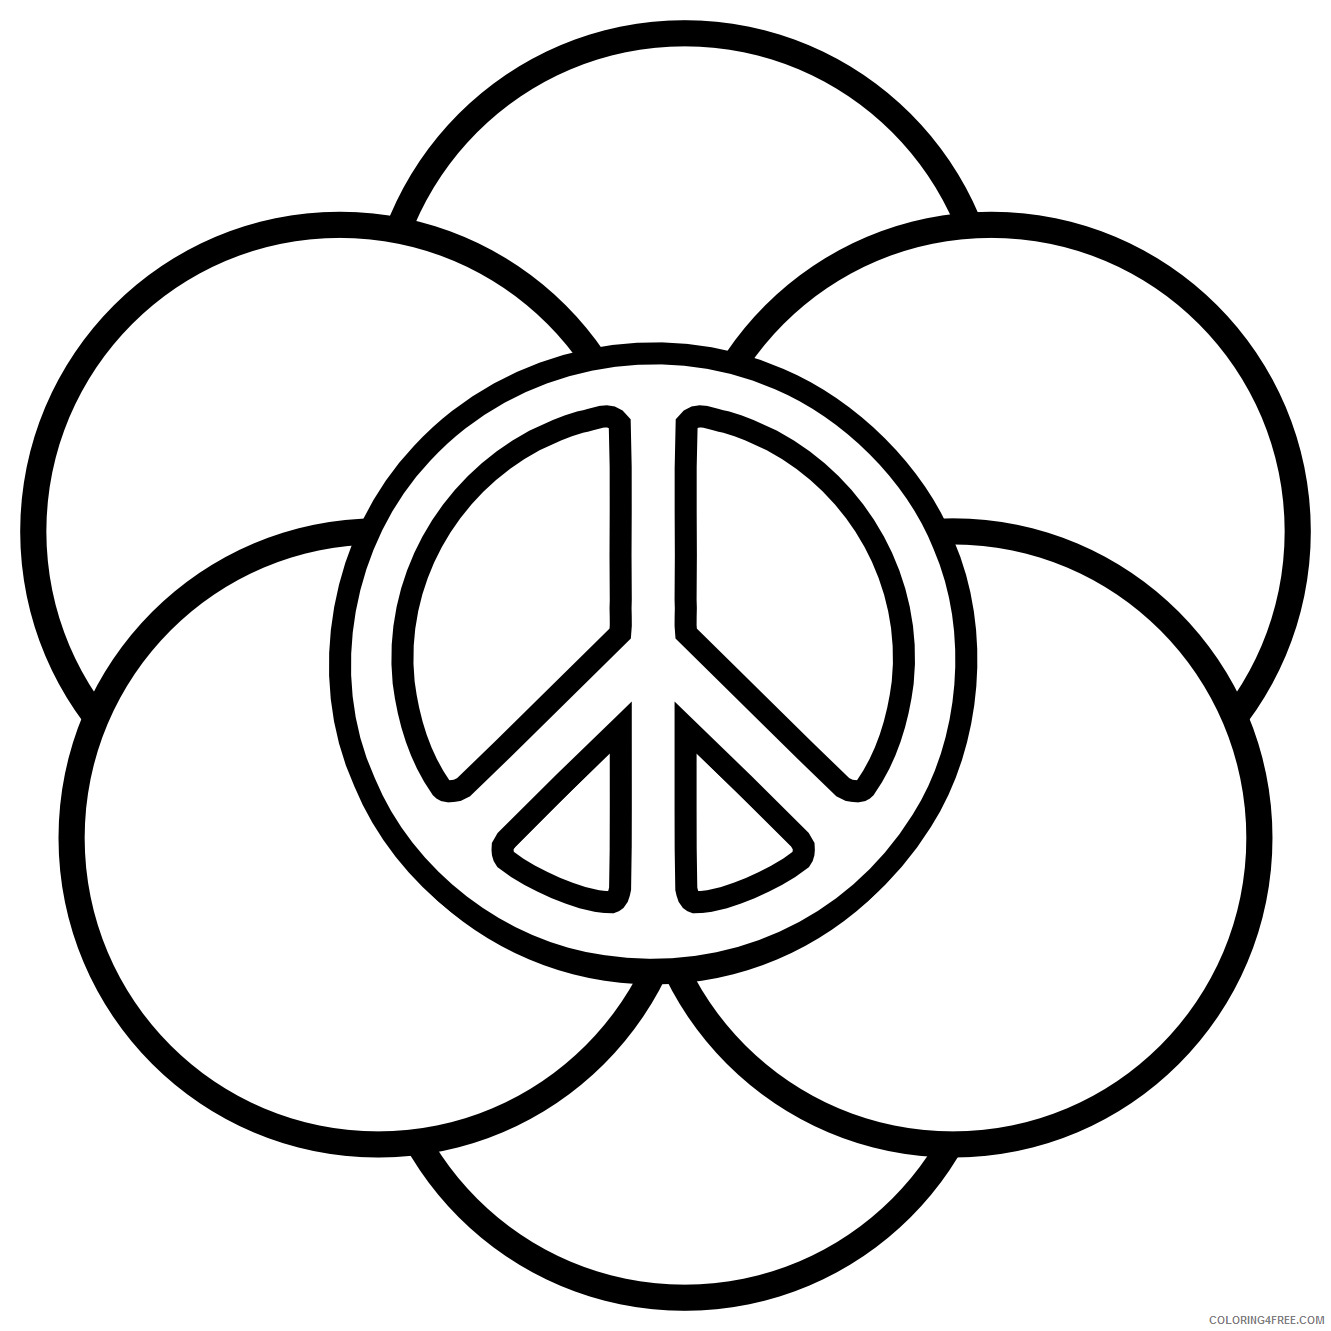 peace sign coloring pages with circles Coloring4free